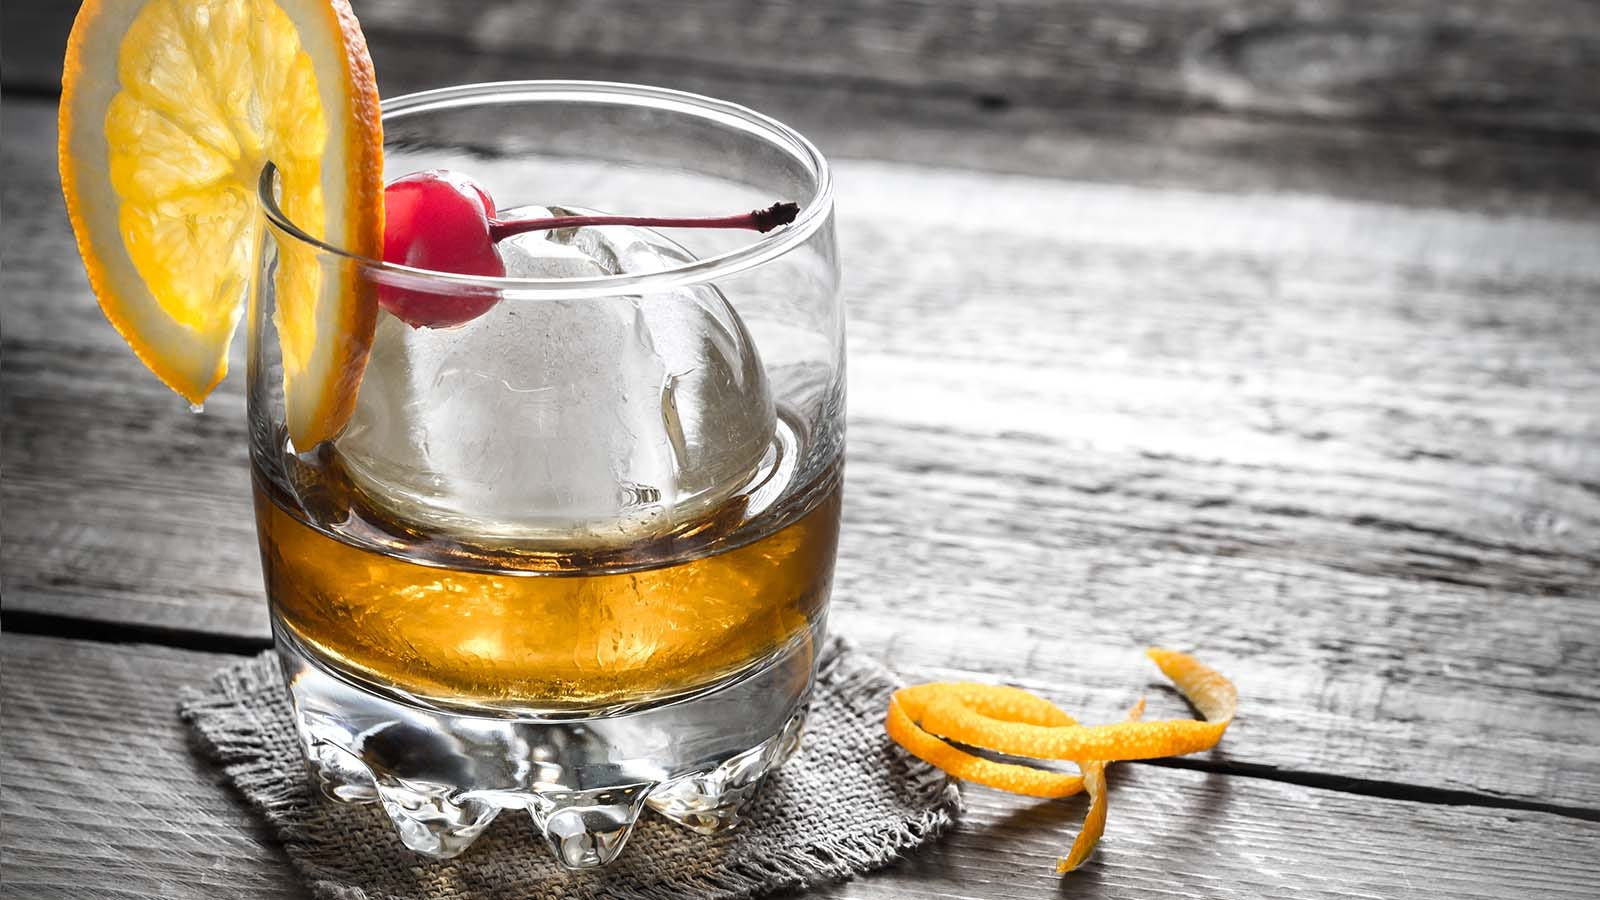 The Best Ice Molds For Your Craft Cocktails and Delicious Whiskey